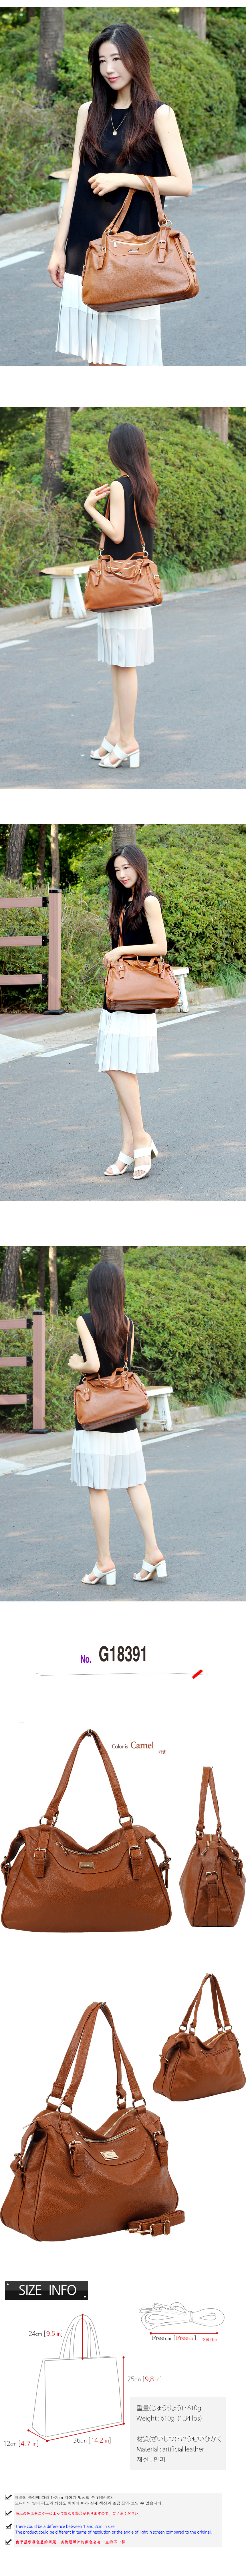 Shoulder&tote bag no.G18391view-M